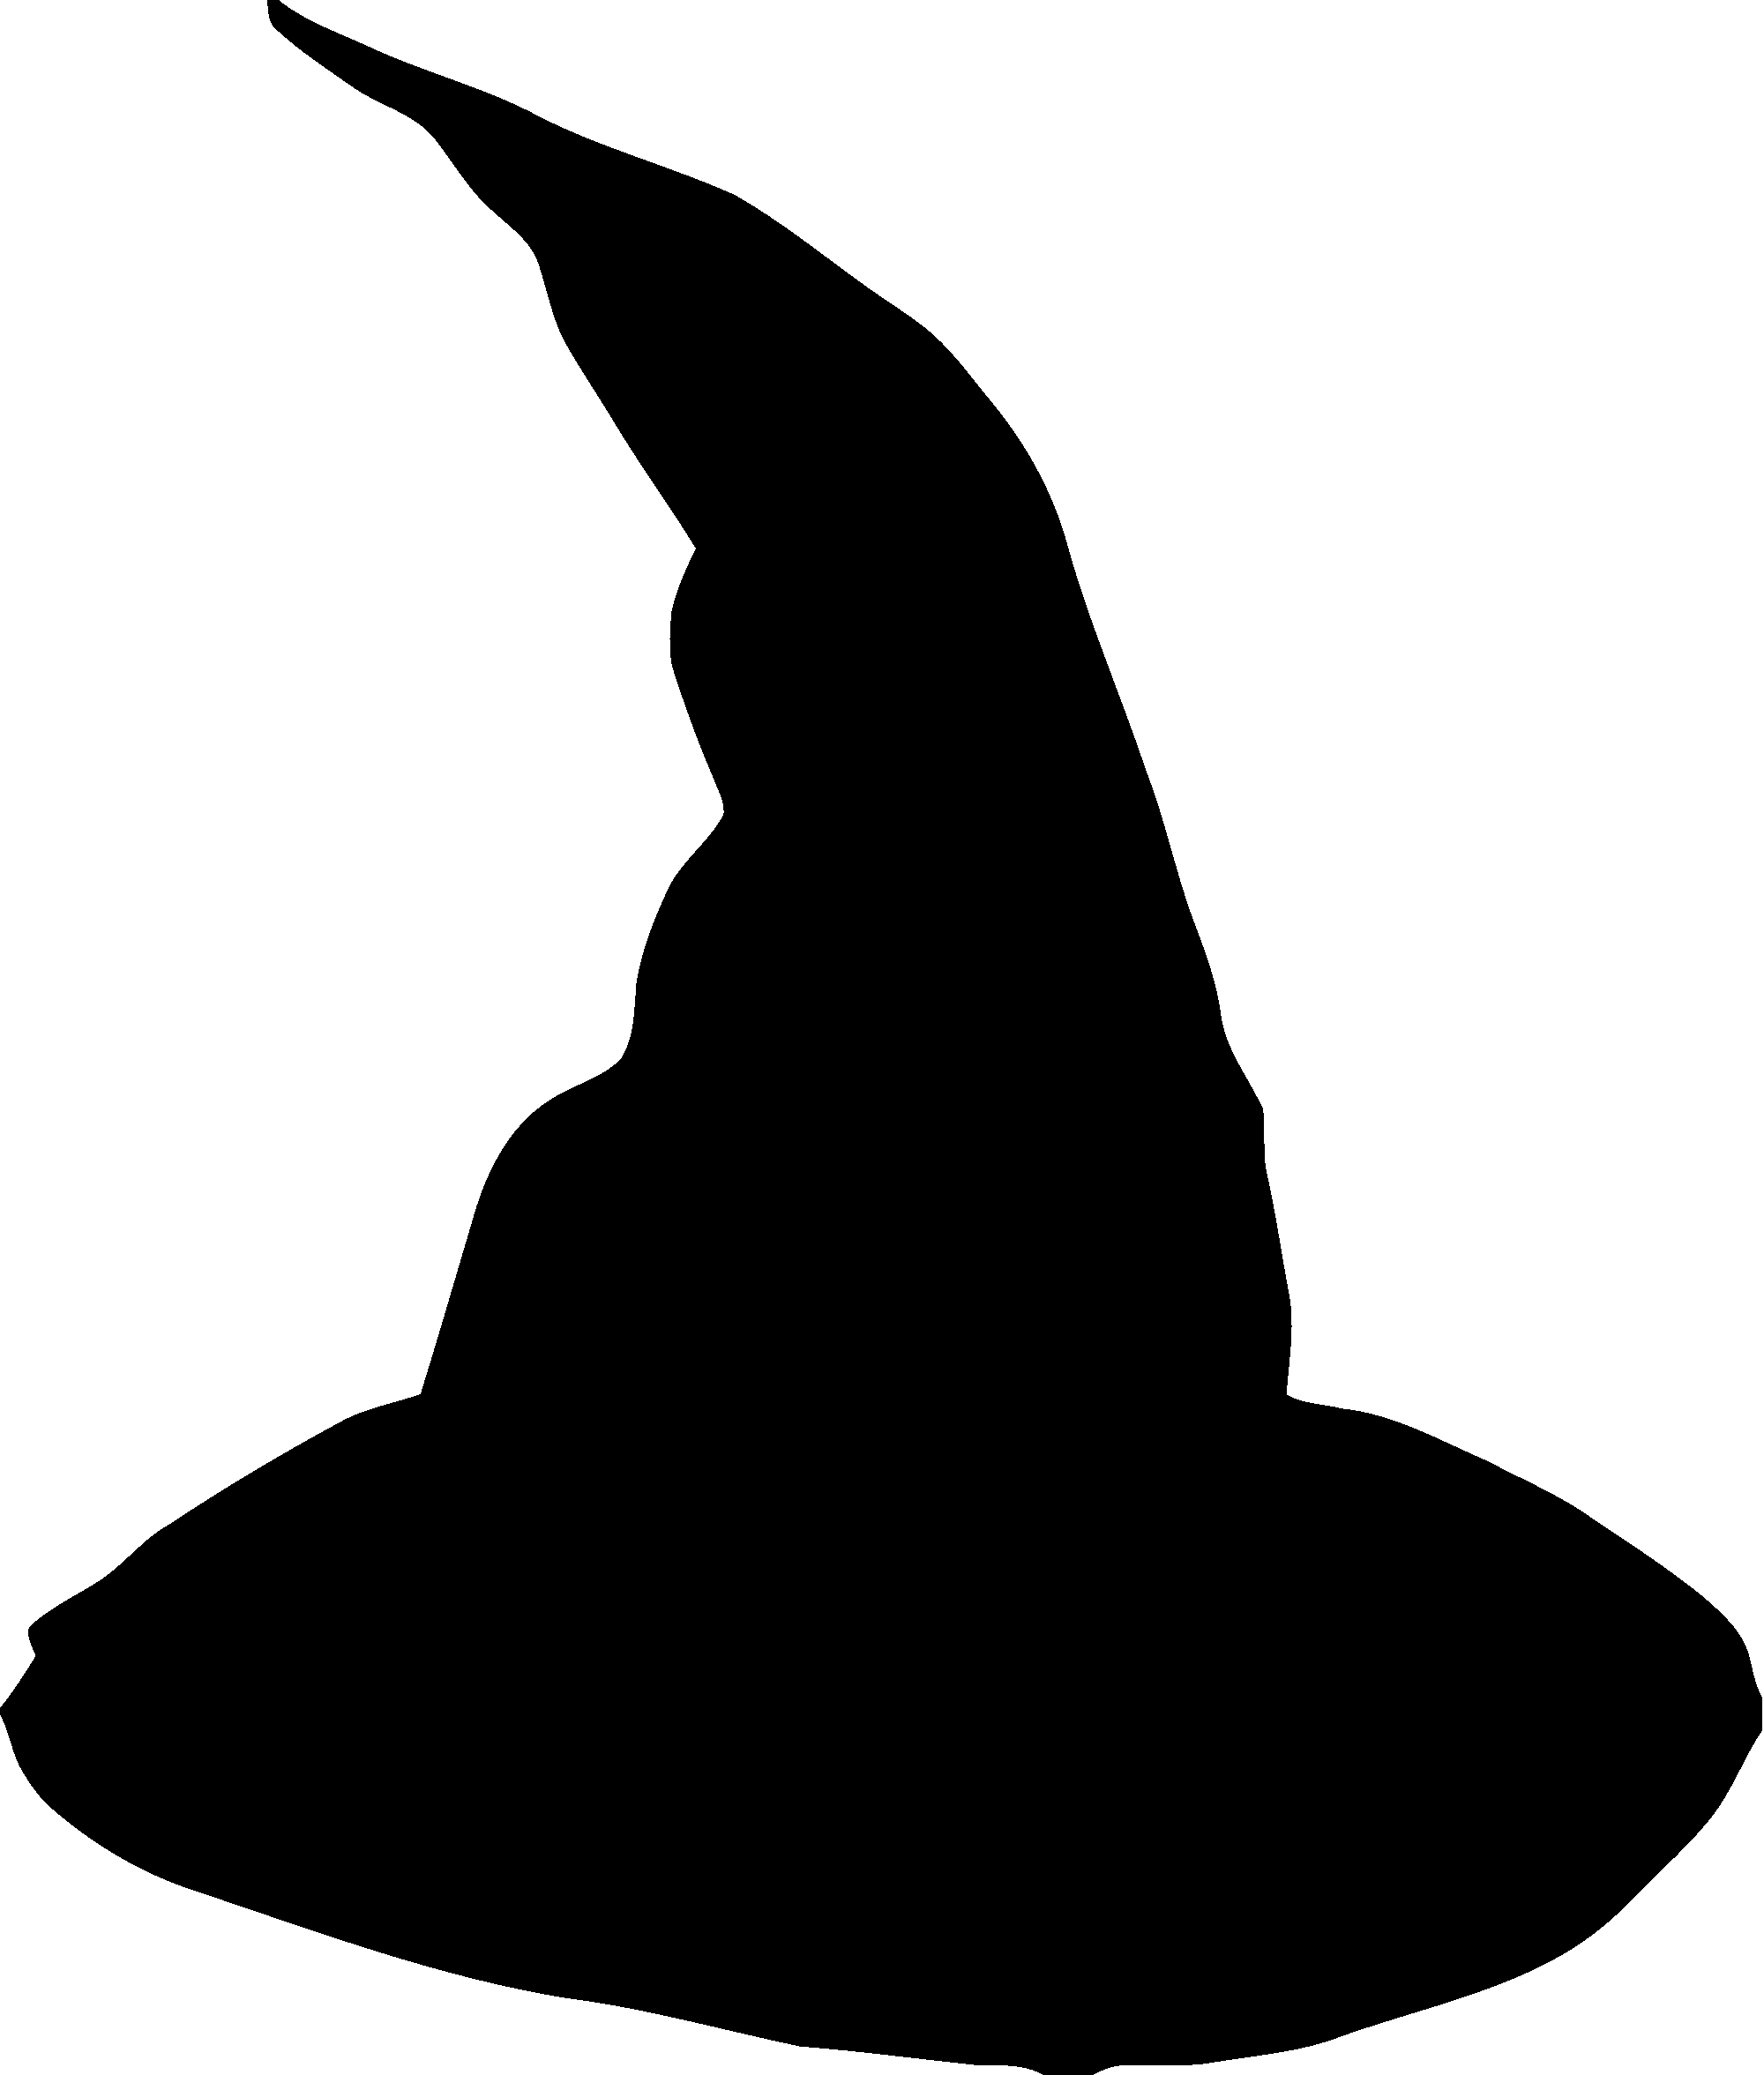 Png images filewikiwitch blackpng. Clipart hat transparent background